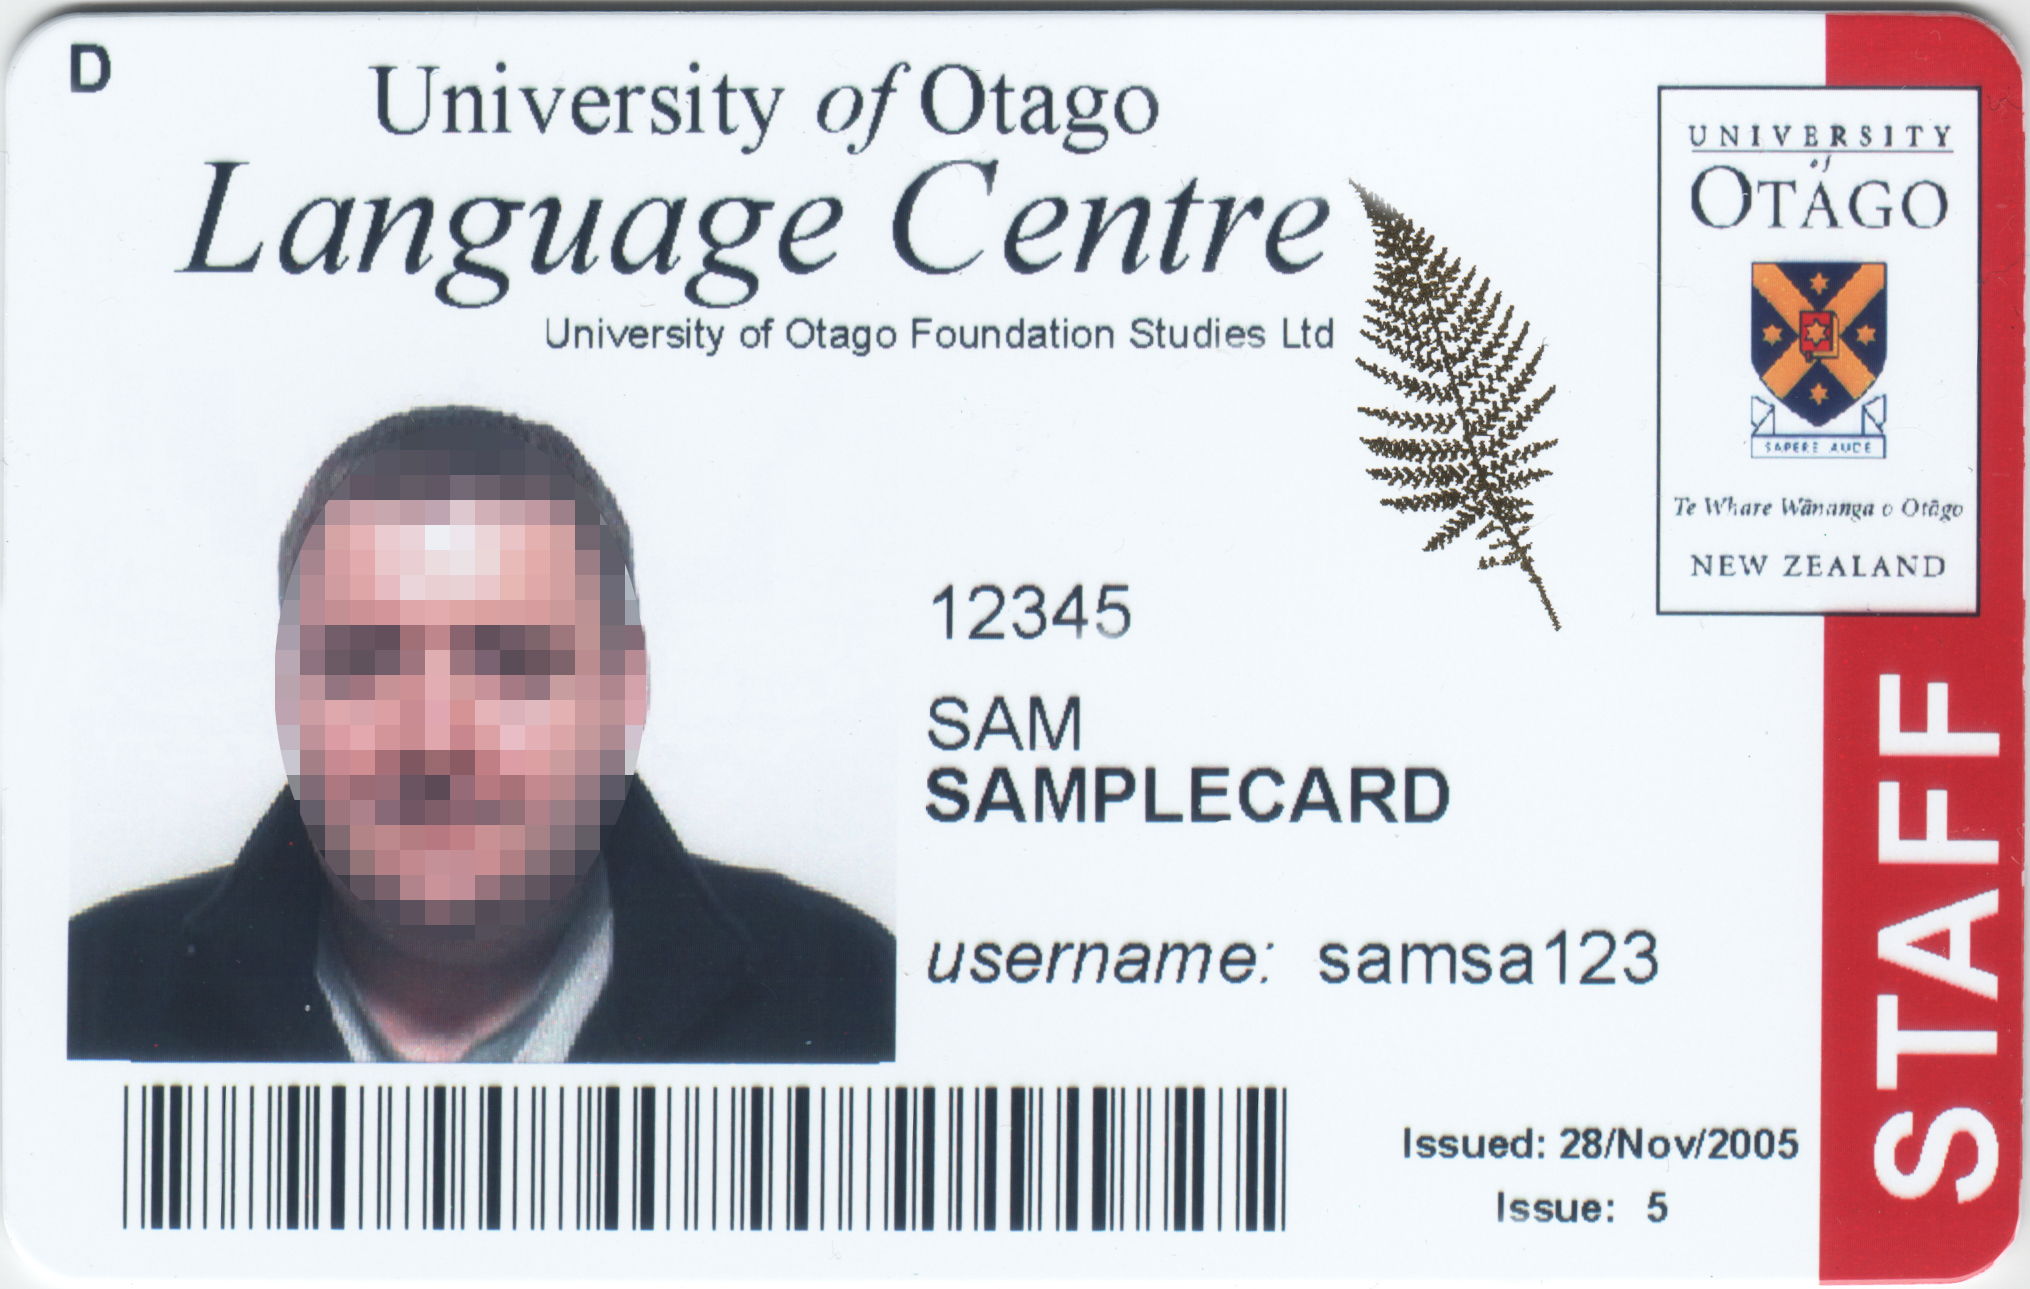 Cards Otago University Card New Zealand Types Student Other Id - Otago Services Of